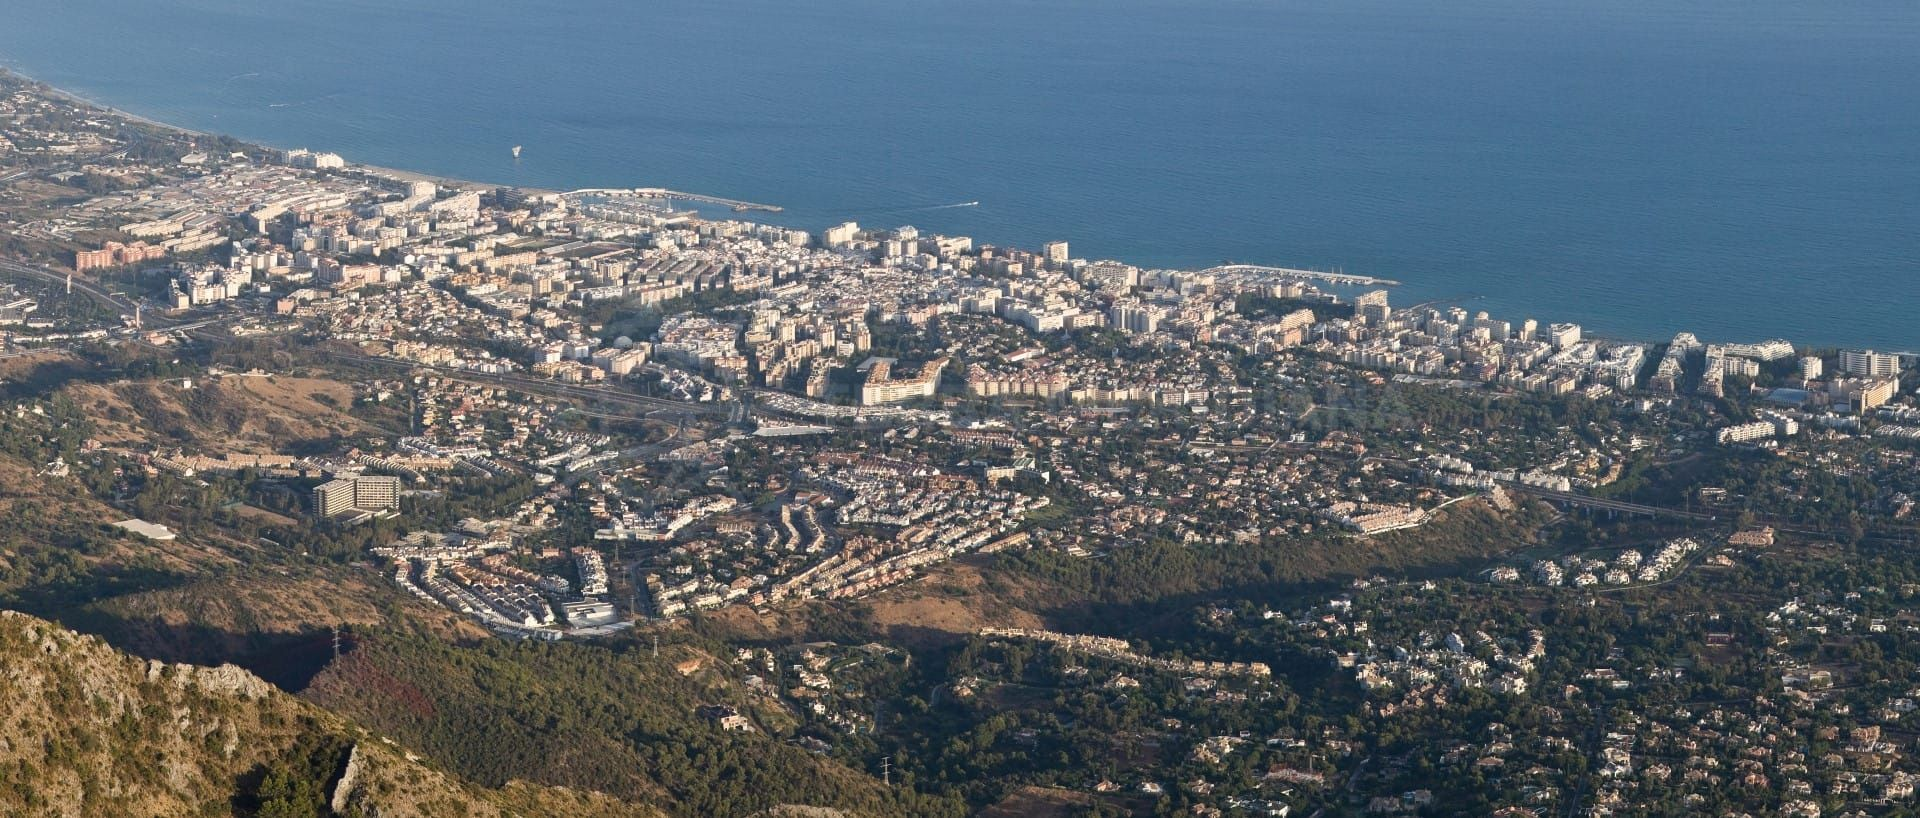 For residential property, Marbella and Estepona are ahead of the curve